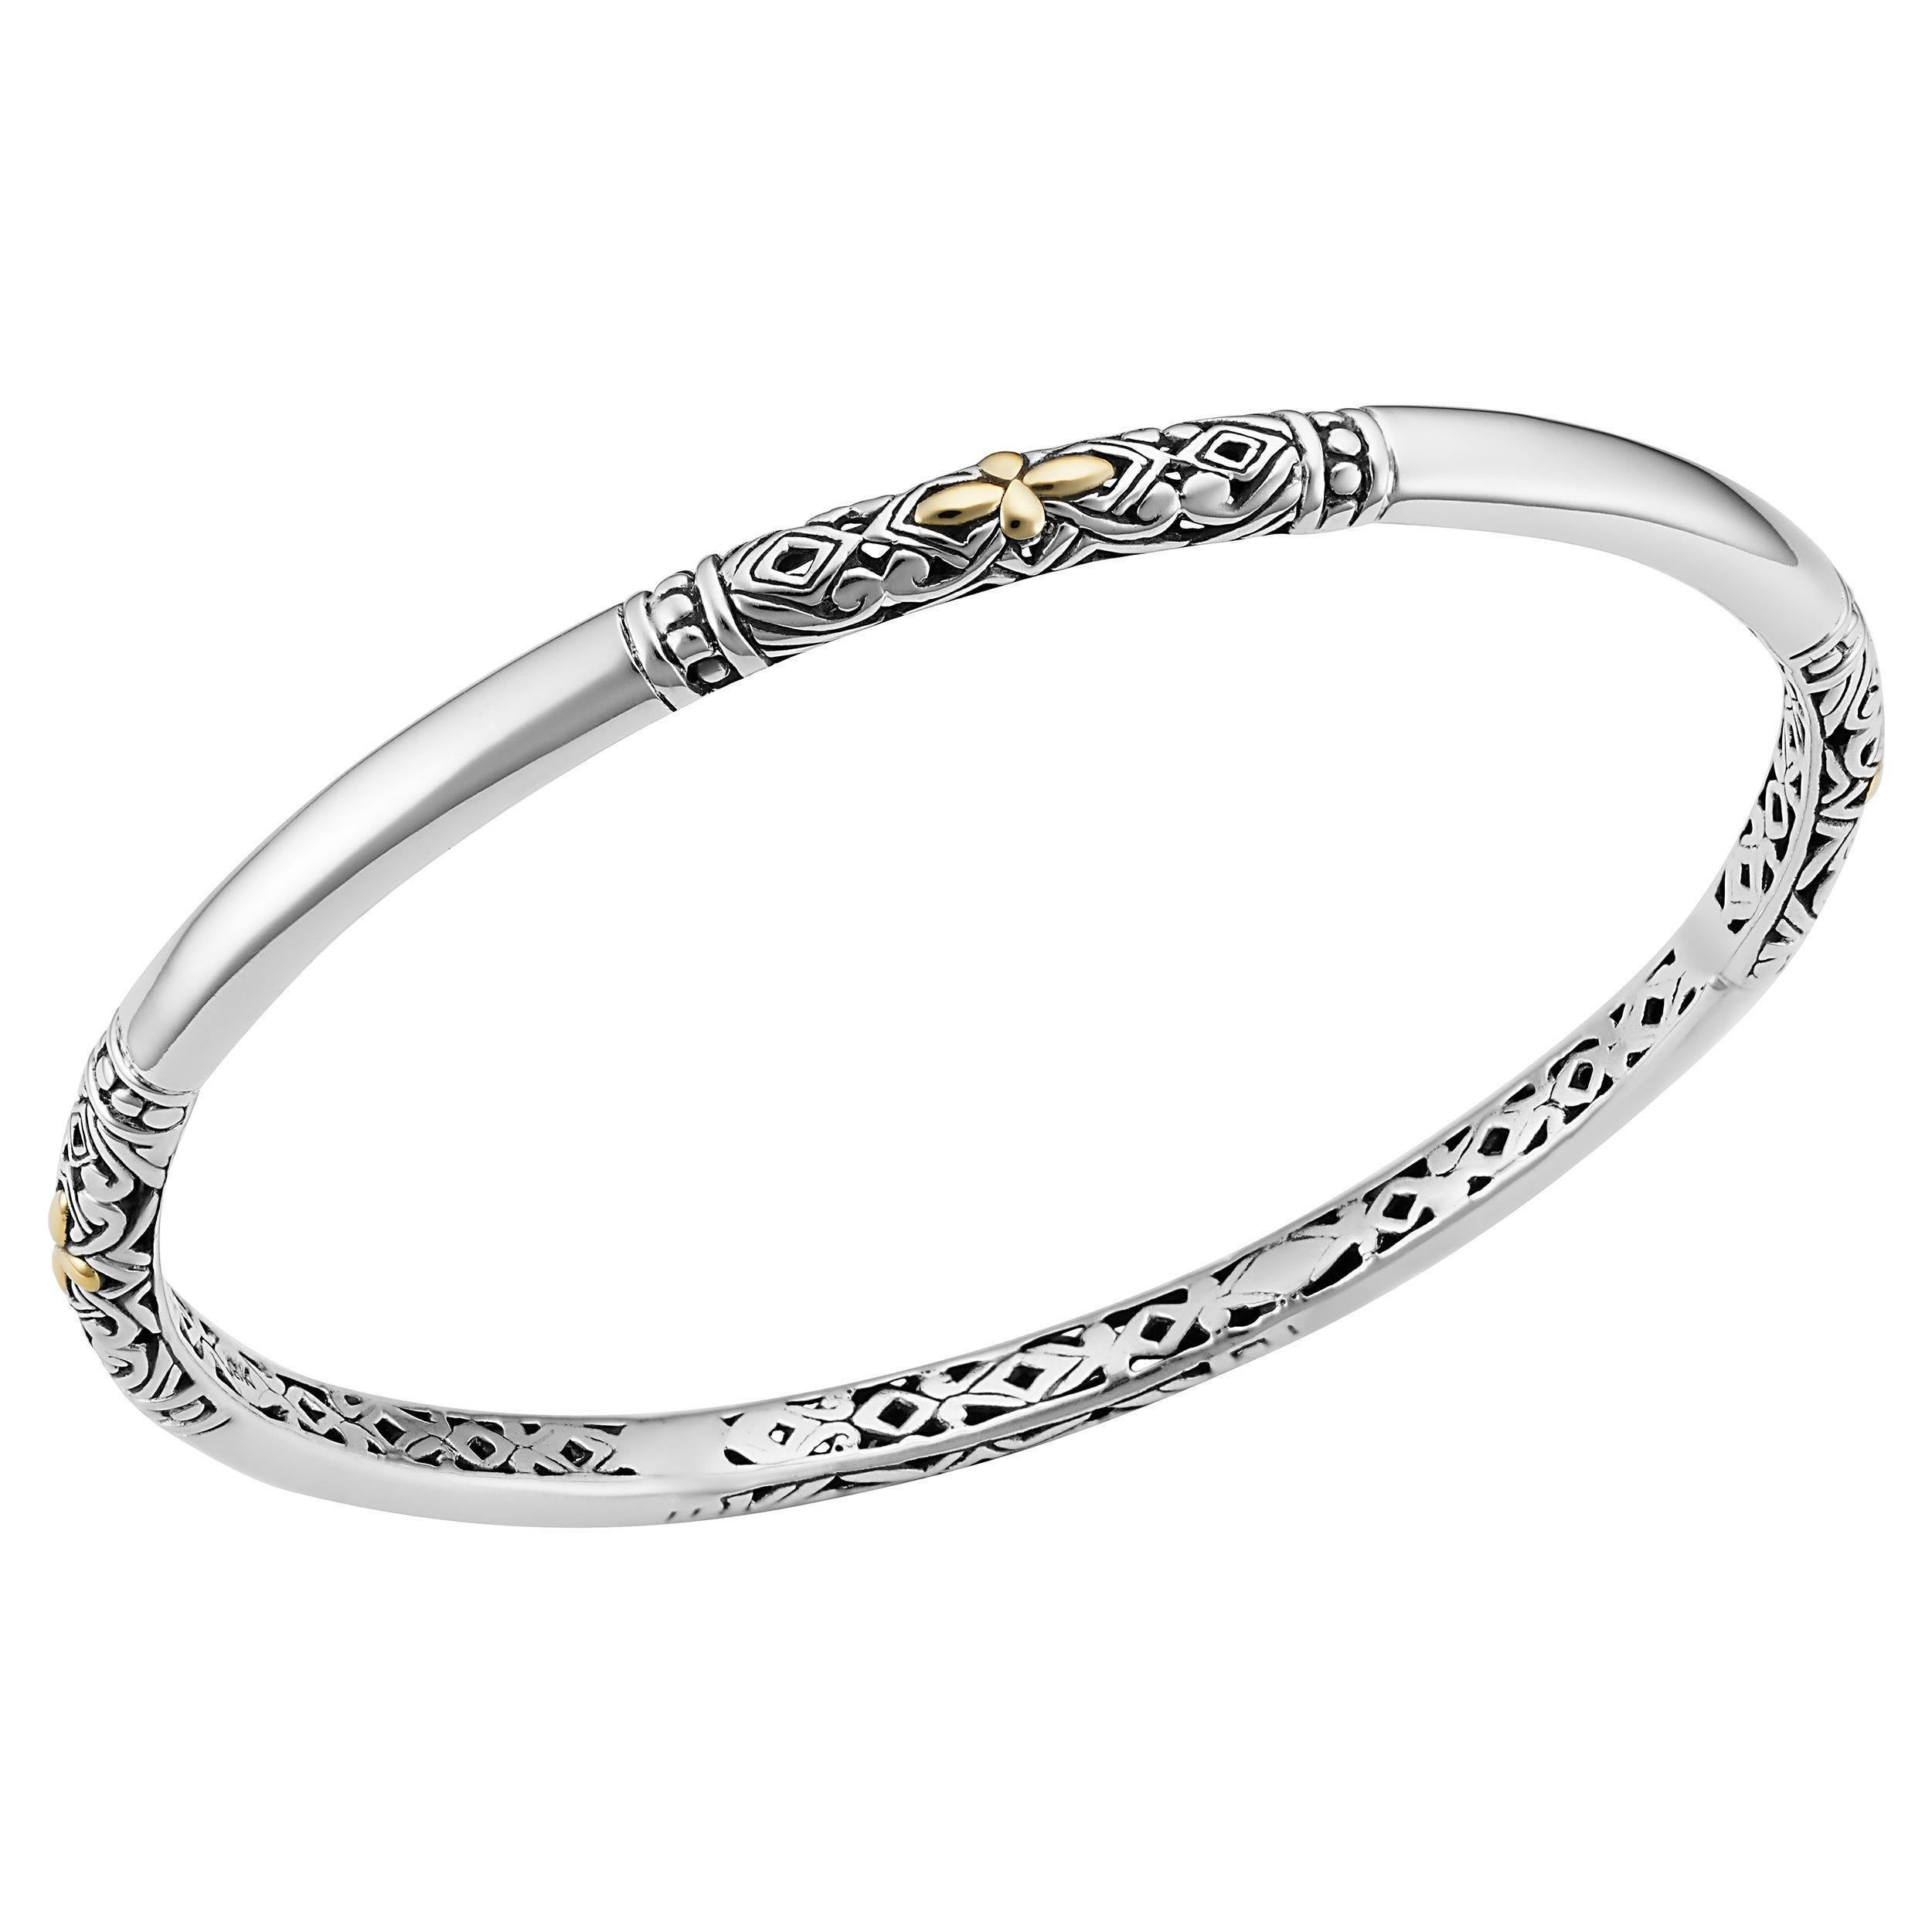 imprint bangles product bracelet bracelets tibetan cuff bangle silver with small flower category